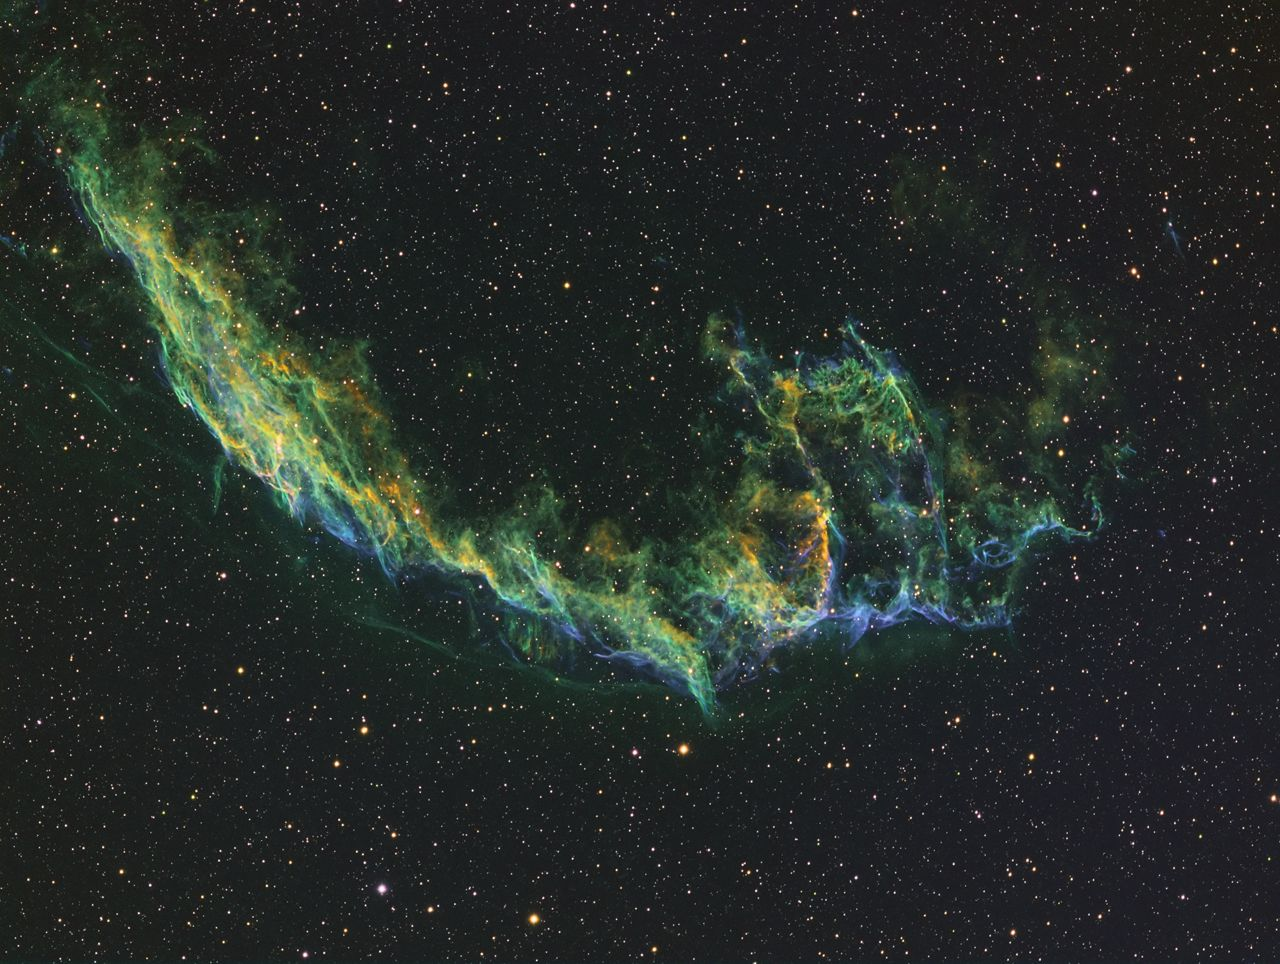 NGC 6992 - The Eastern Veil in HST